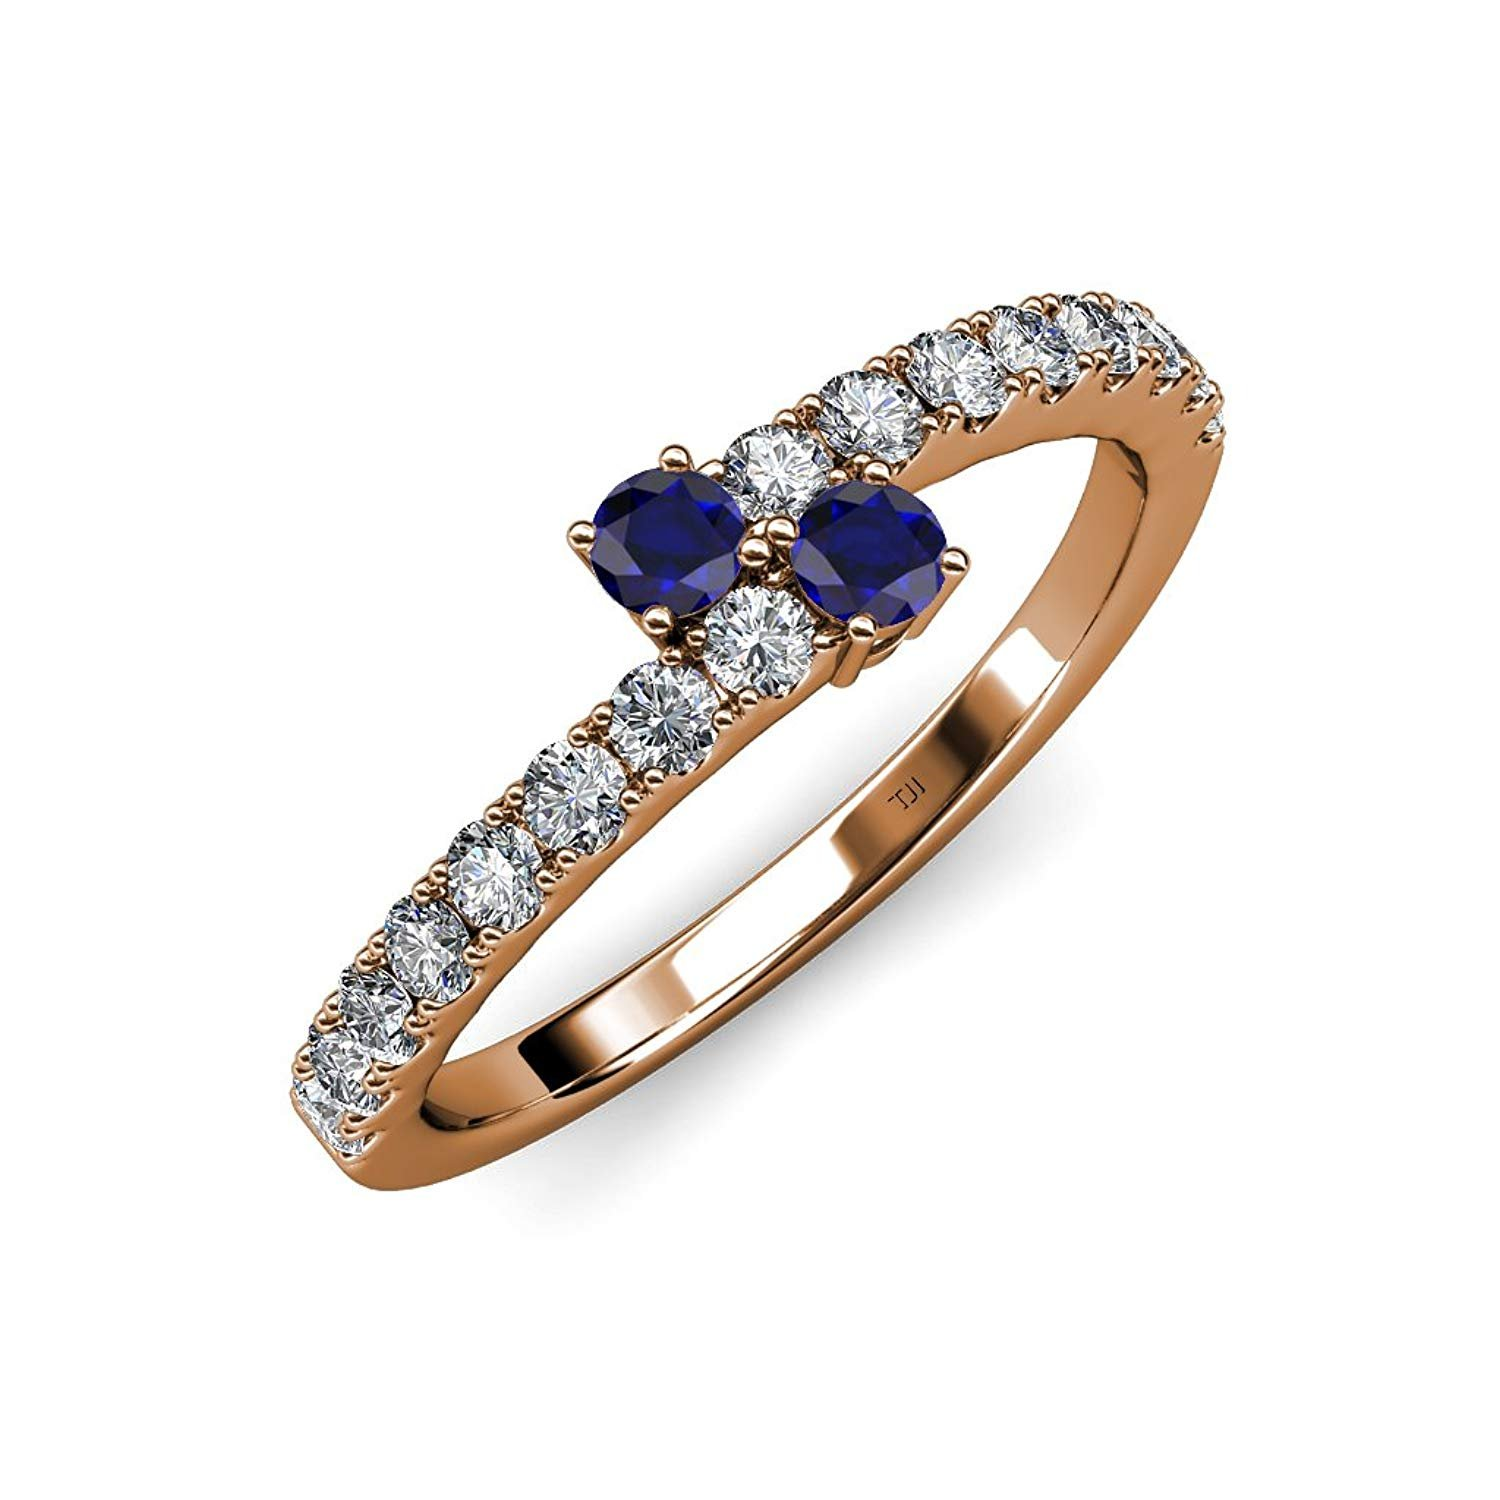 Blue Sapphire 2 Stone with Side Diamonds Bypass Engagement Ring 0.88 ct tw in 14K Rose Gold.size 6.5 by TriJewels